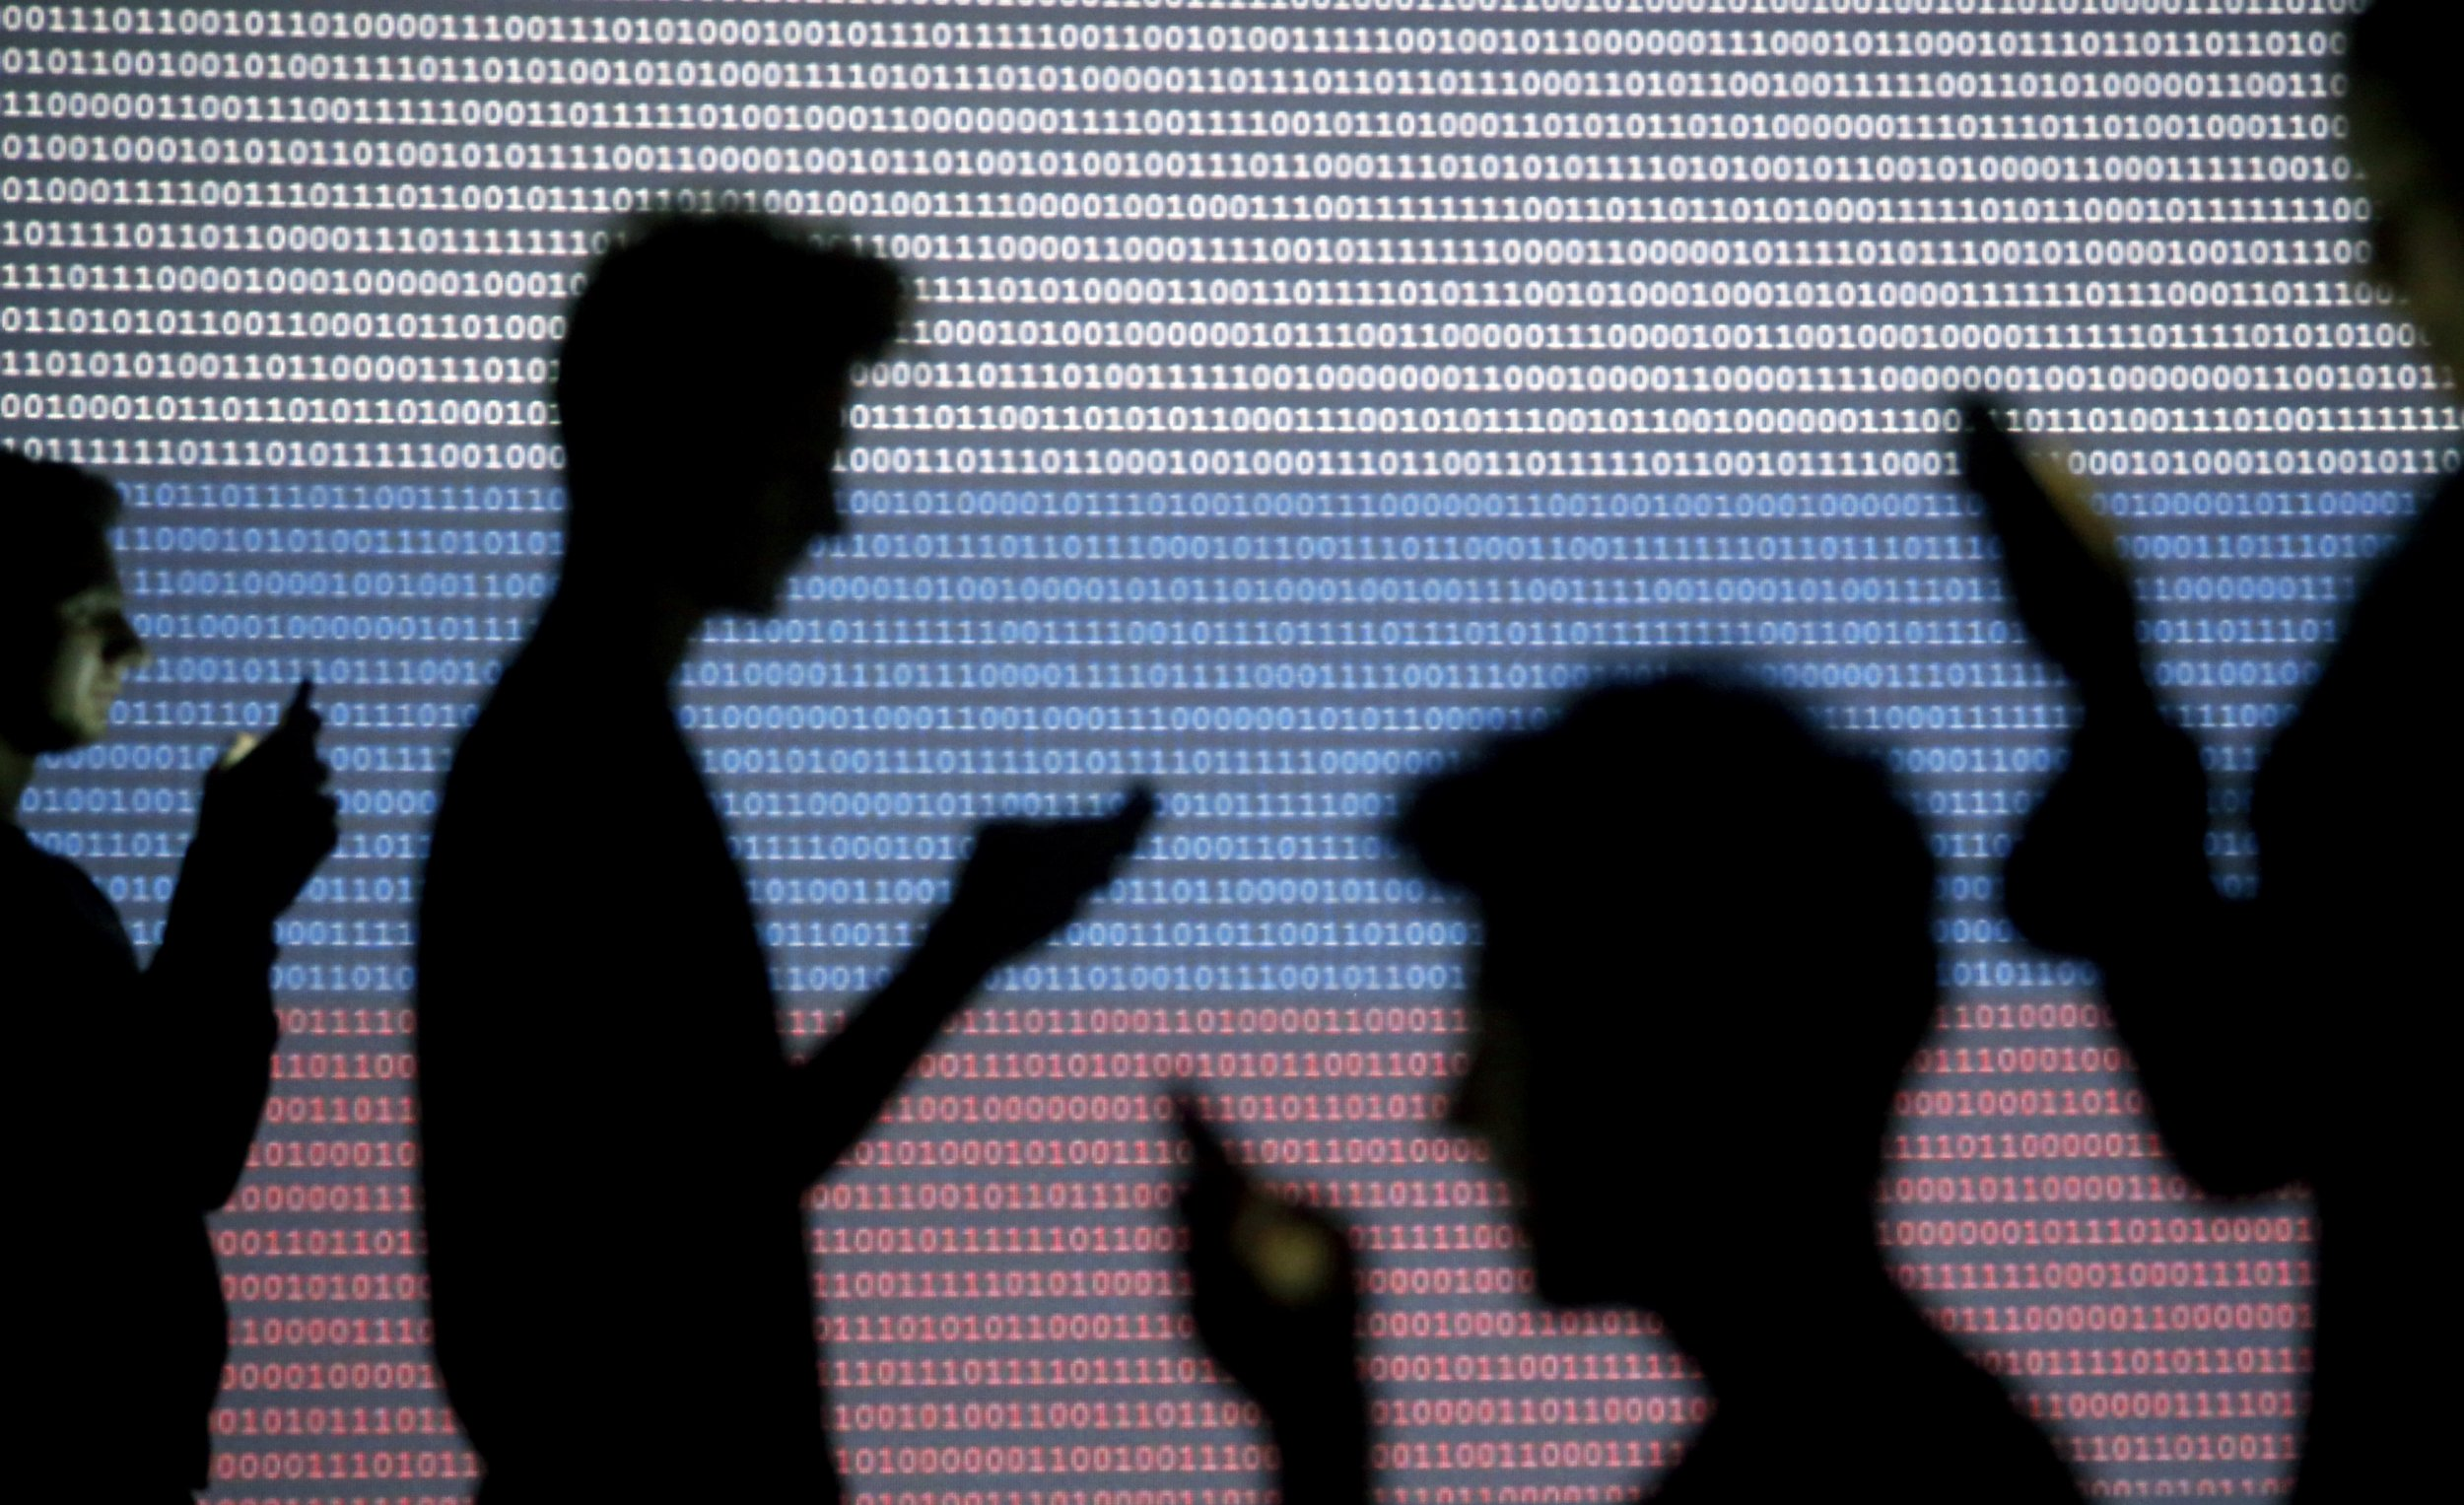 People are silhouetted as they pose with mobile devices in front of a screen projected with a binary code and a Russian national flag.